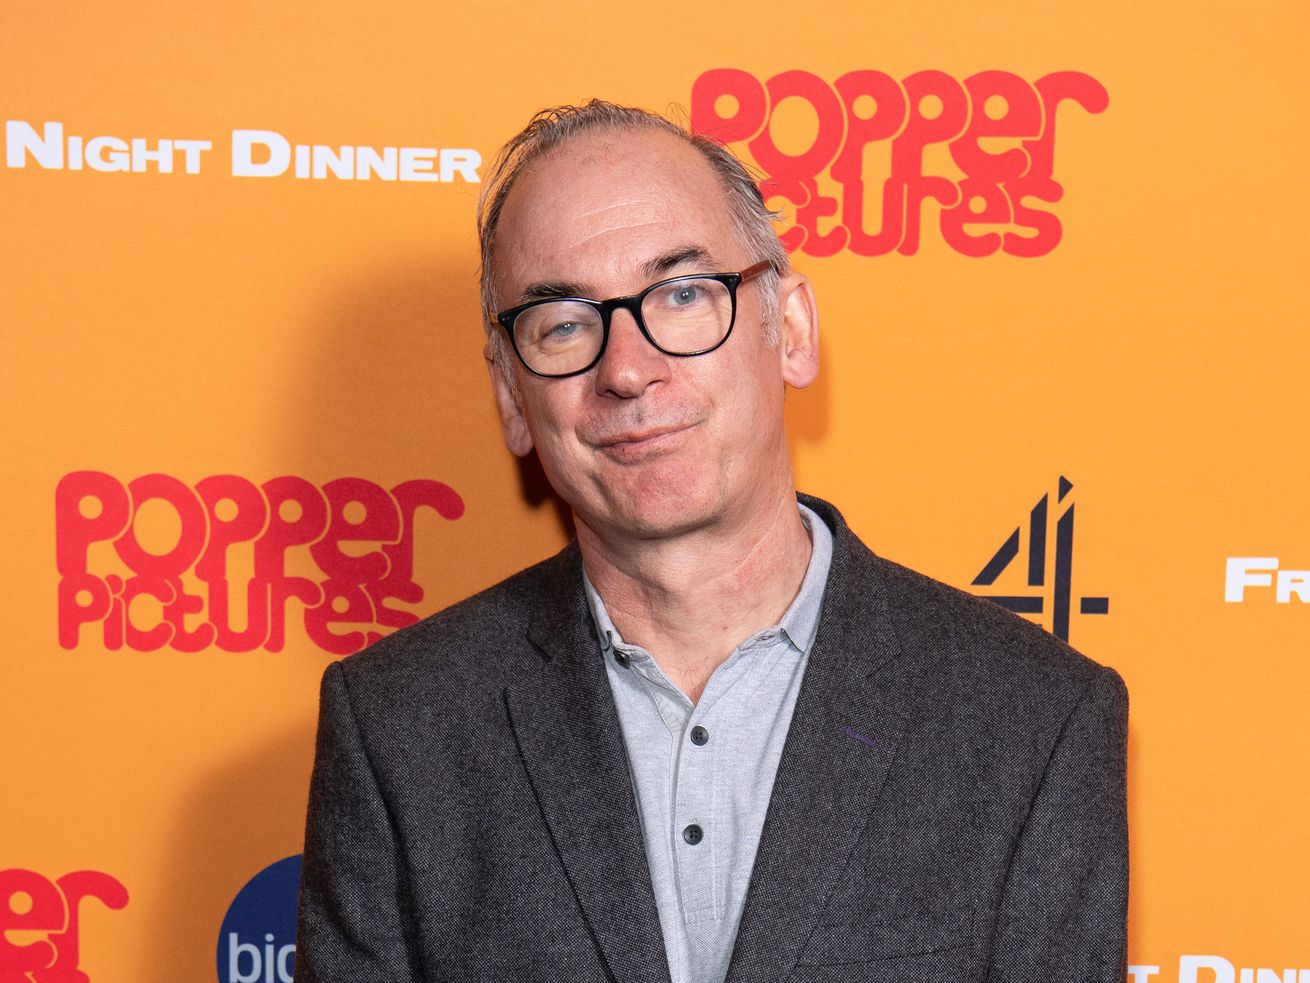 """Actor Paul Ritter attends the """"Friday Night Dinner"""" photocall at Curzon Soho Cinemas 2020, in London, England."""